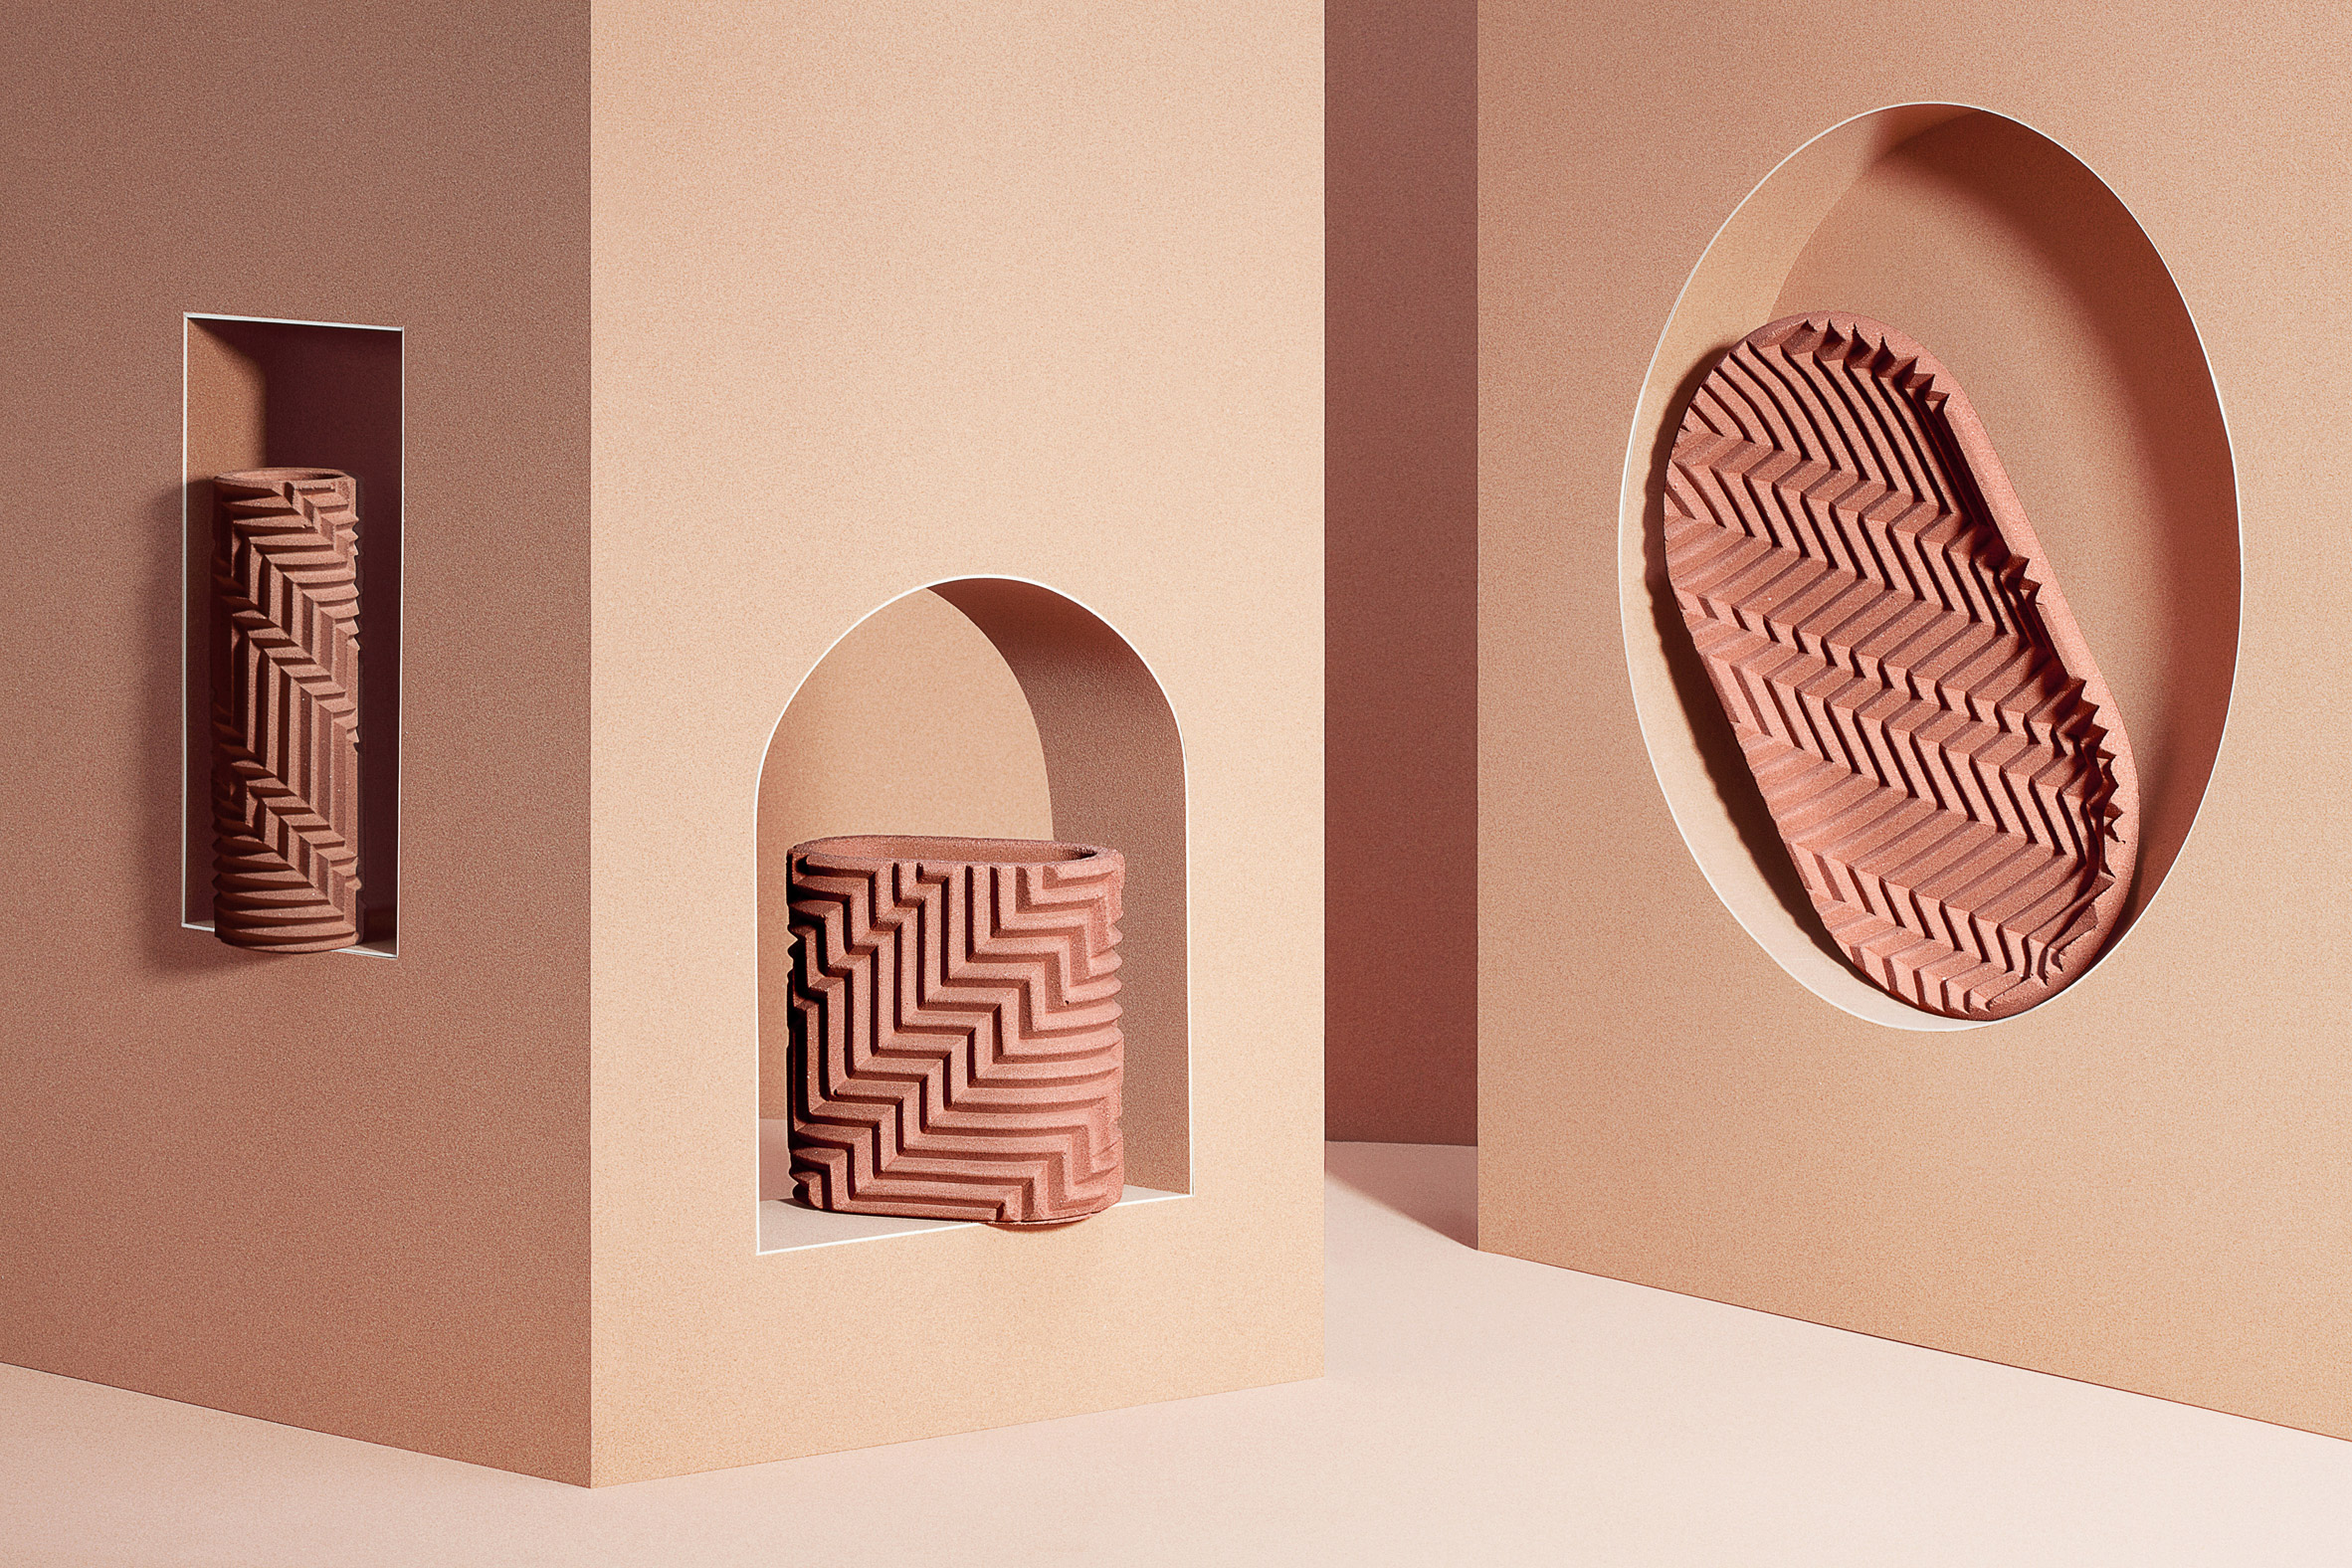 Phil Cuttance creates herringbone-patterned objects from Jesmonite material